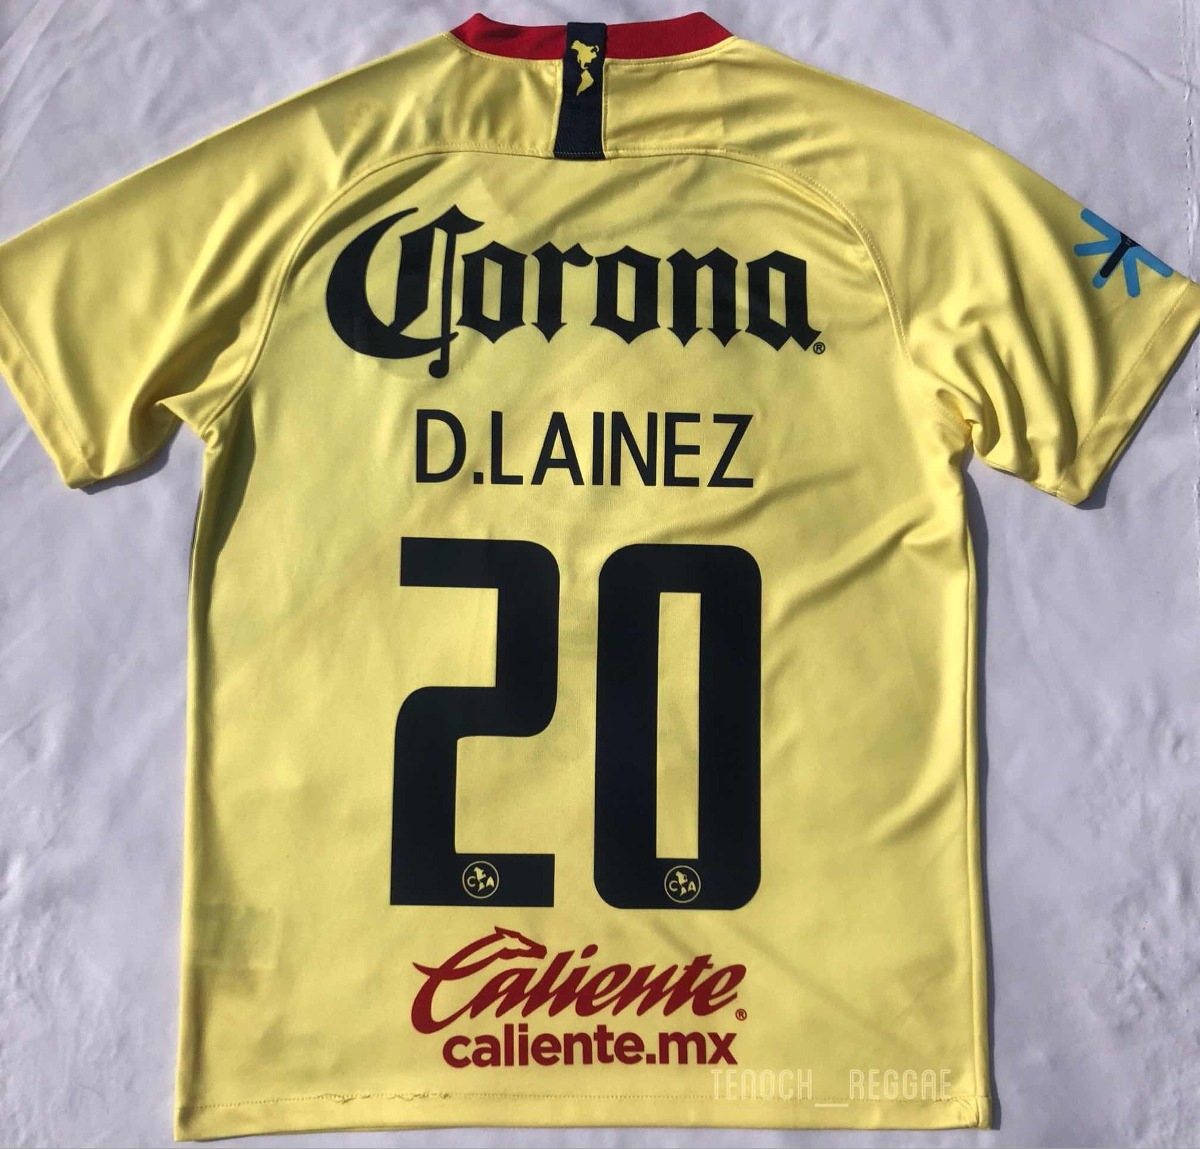 Jersey Playera America Local 2018-2019 D. Lainez -   649.00 en ... 374efc0860f49